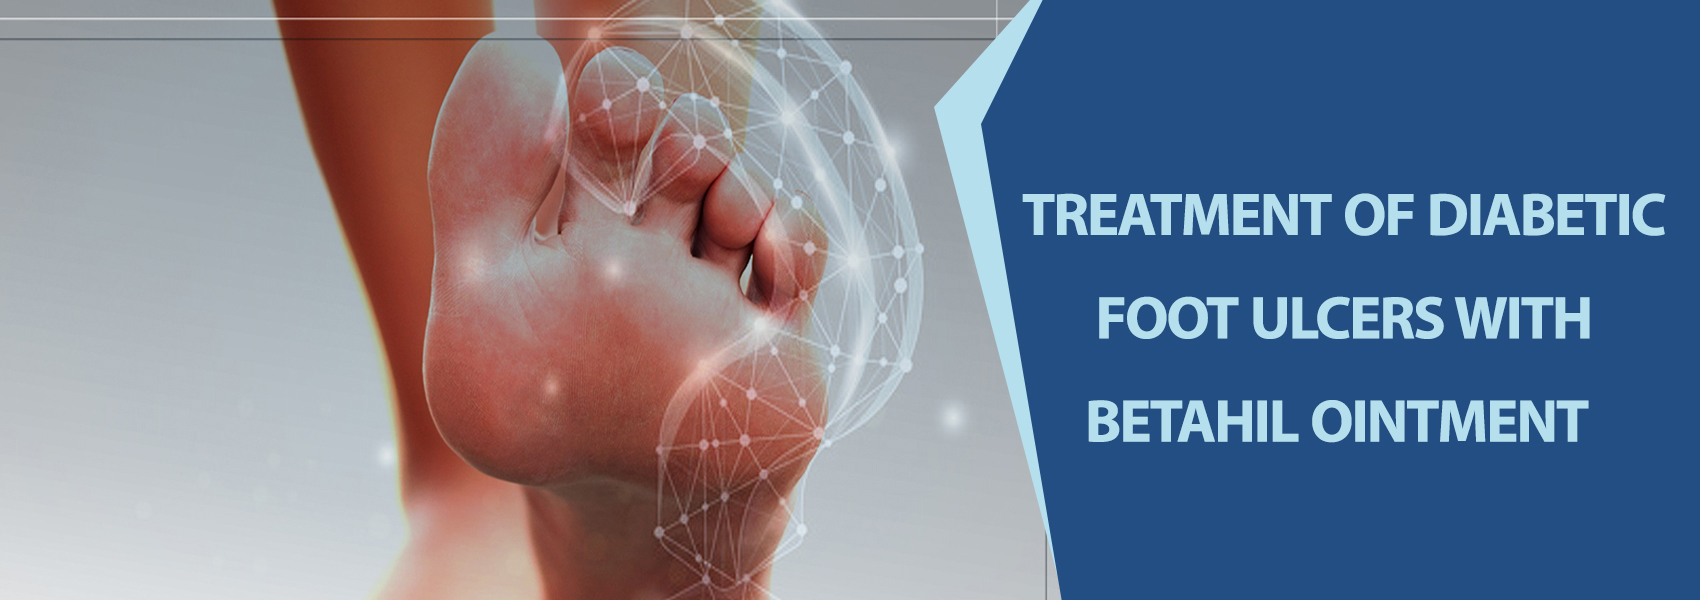 TREATMENT-OF-DIABETIC-FOOT-ULCERS-WITH-BETAHIL-OINTMENT